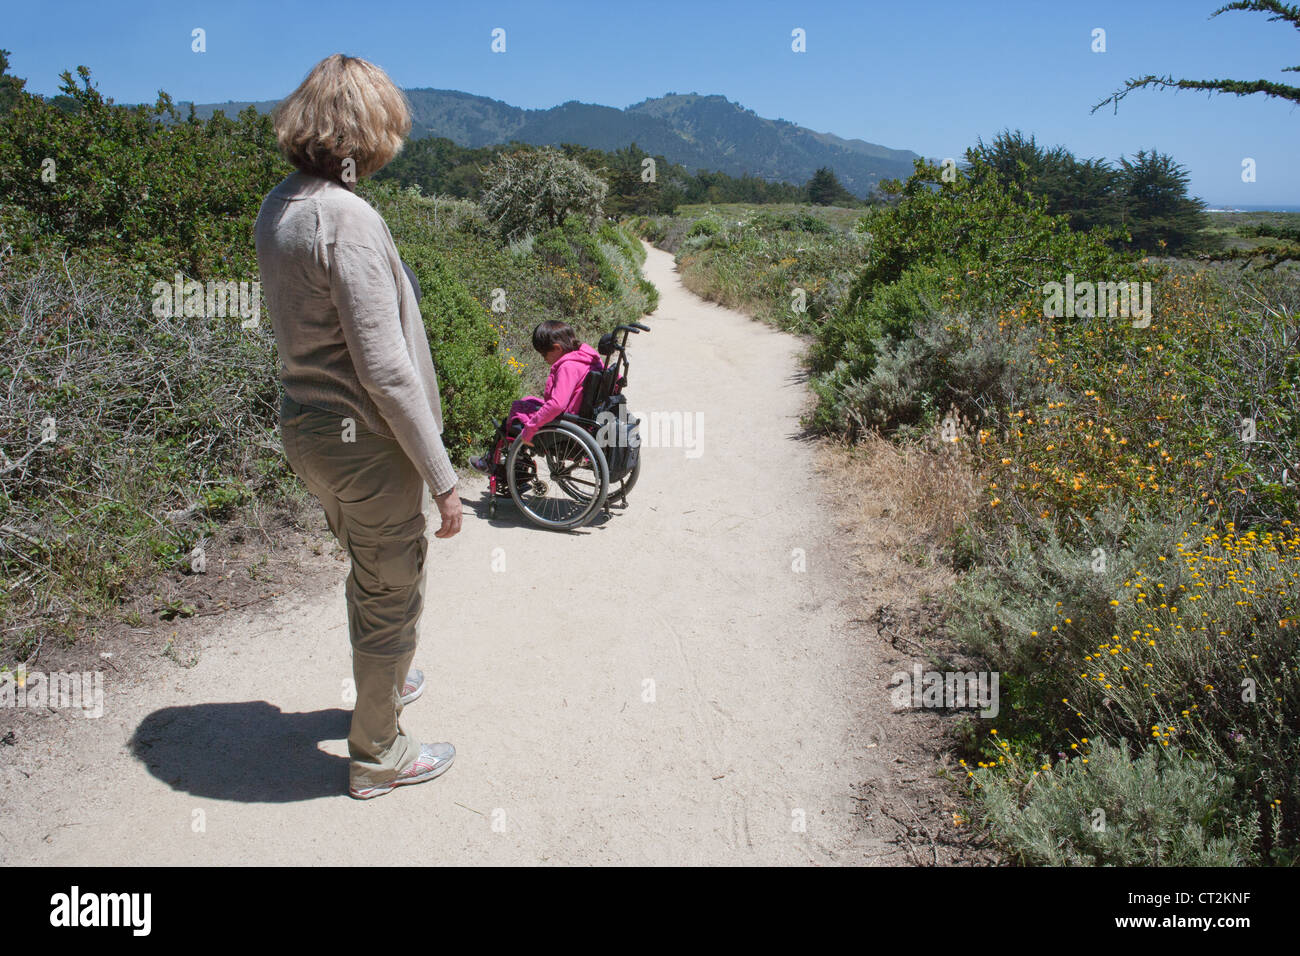 Mom watching her seven year old daughter with muscular dystrophy steer her wheelchair on dirt hiking trail. - Stock Image